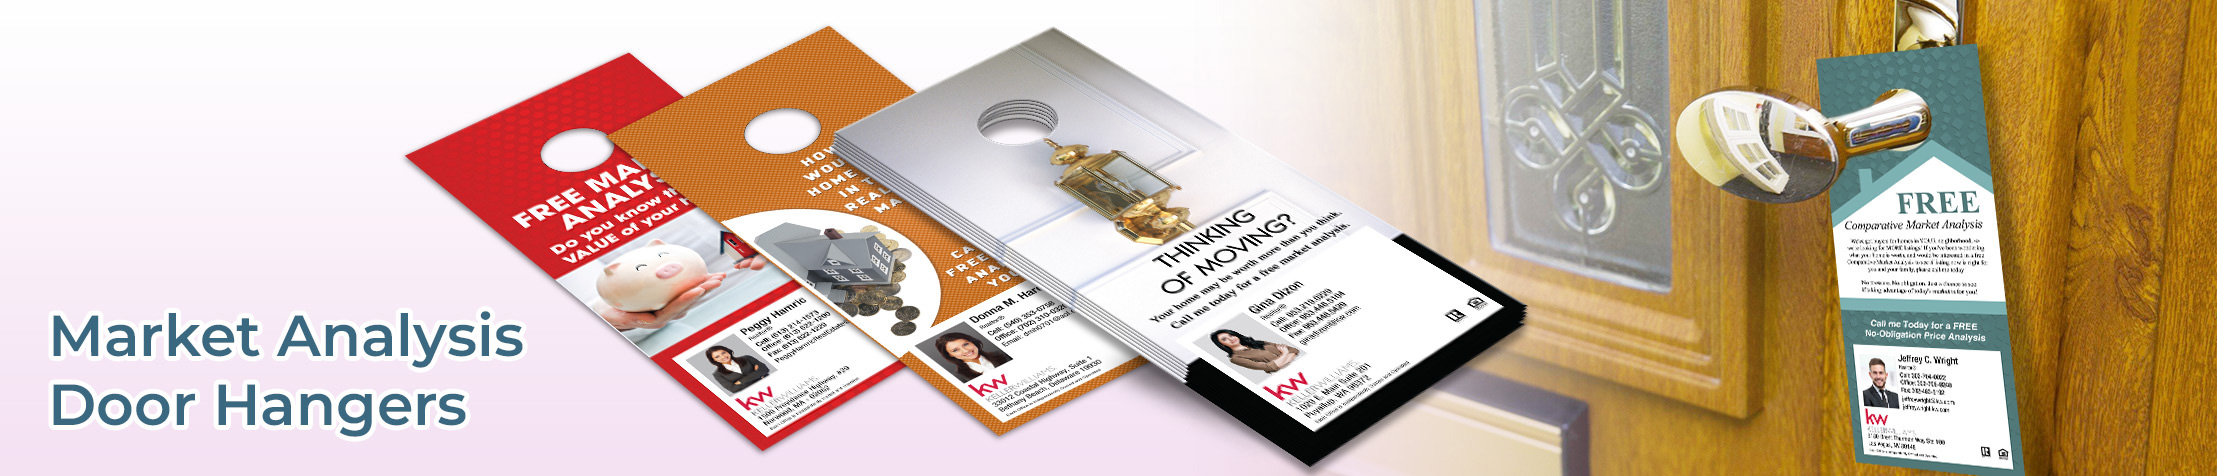 Keller Williams Market Analysis Door Hangers - KW Approved Vendor Gloss Door Knockers for Realtors | BestPrintBuy.com